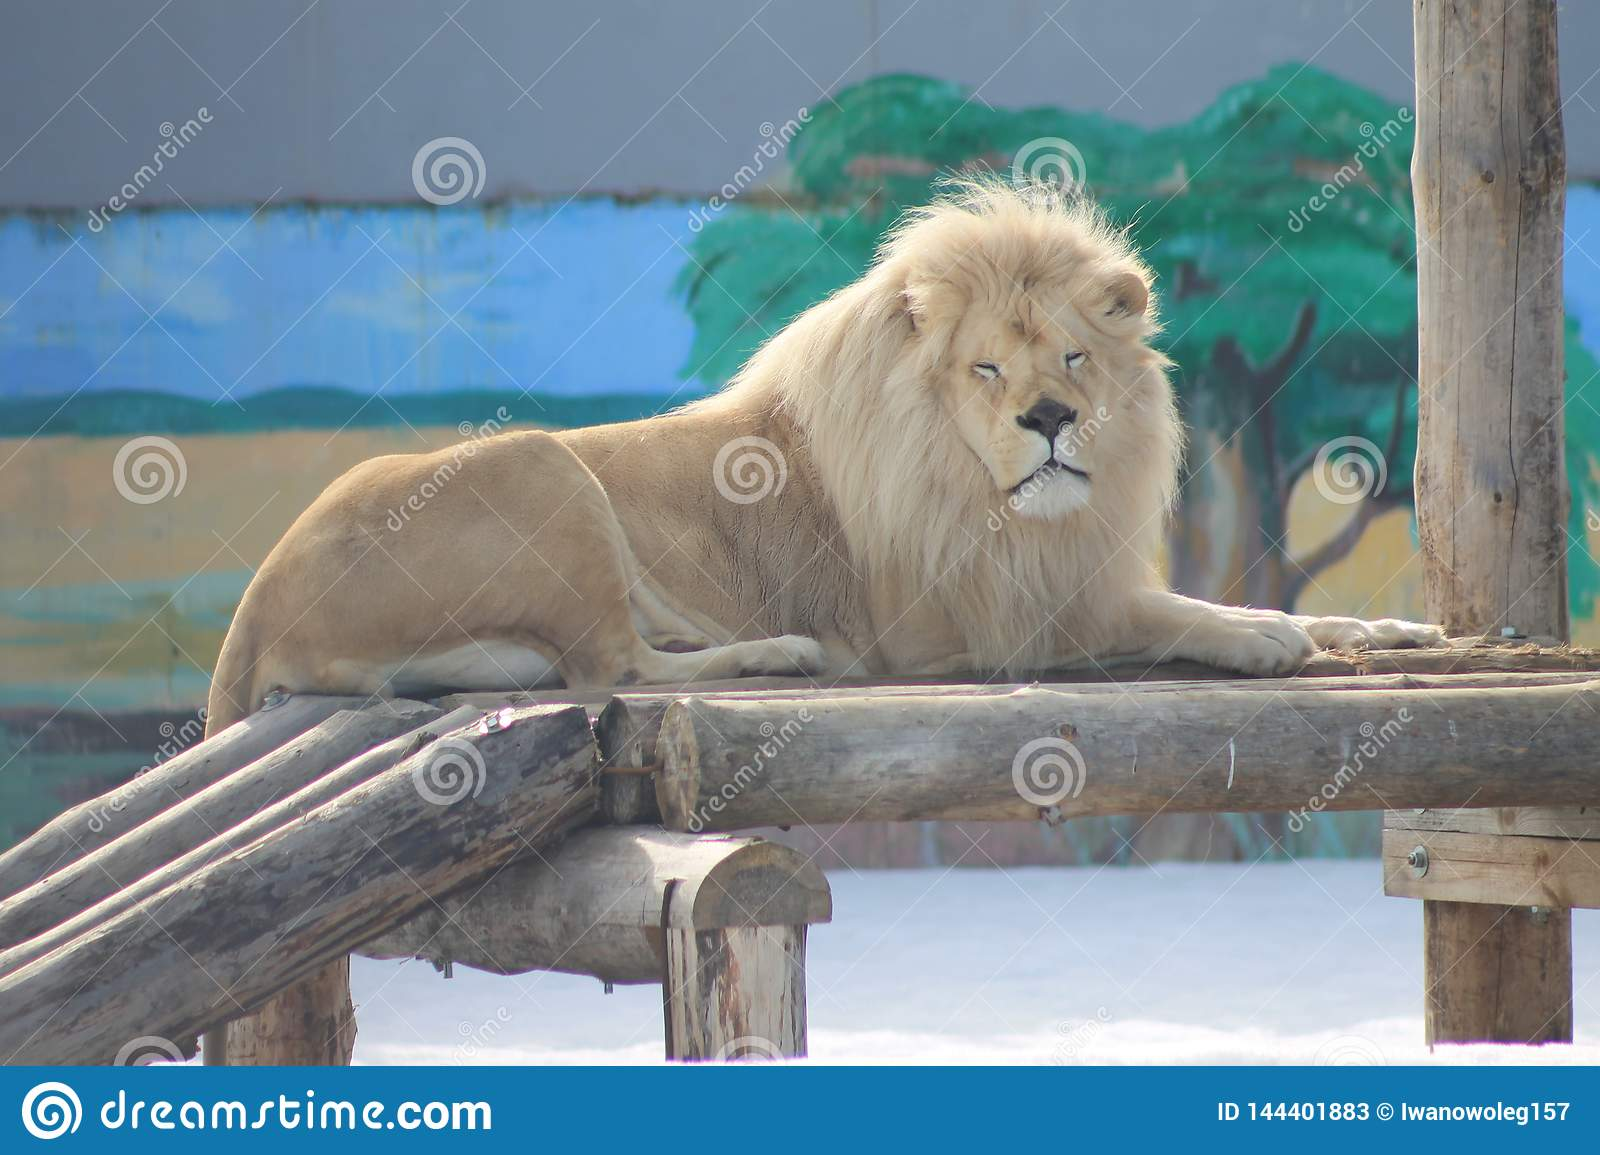 Lion, or rather leo, king of beasts.